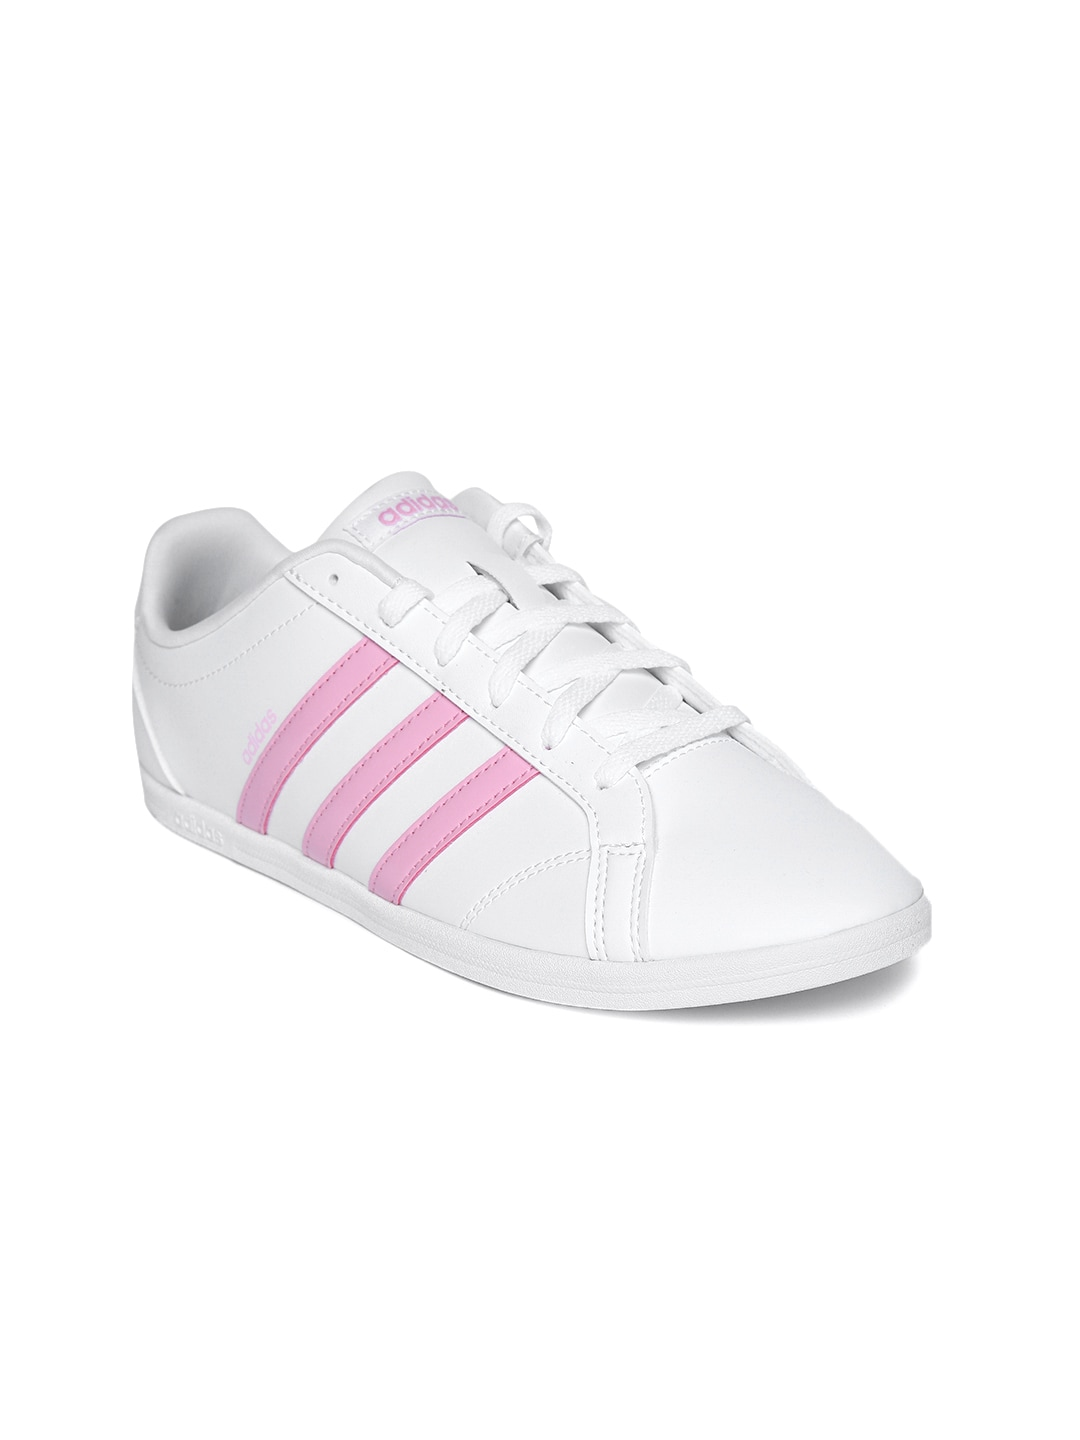 c37857044 Adidas Shoes - Buy Adidas Shoes for Men   Women Online - Myntra